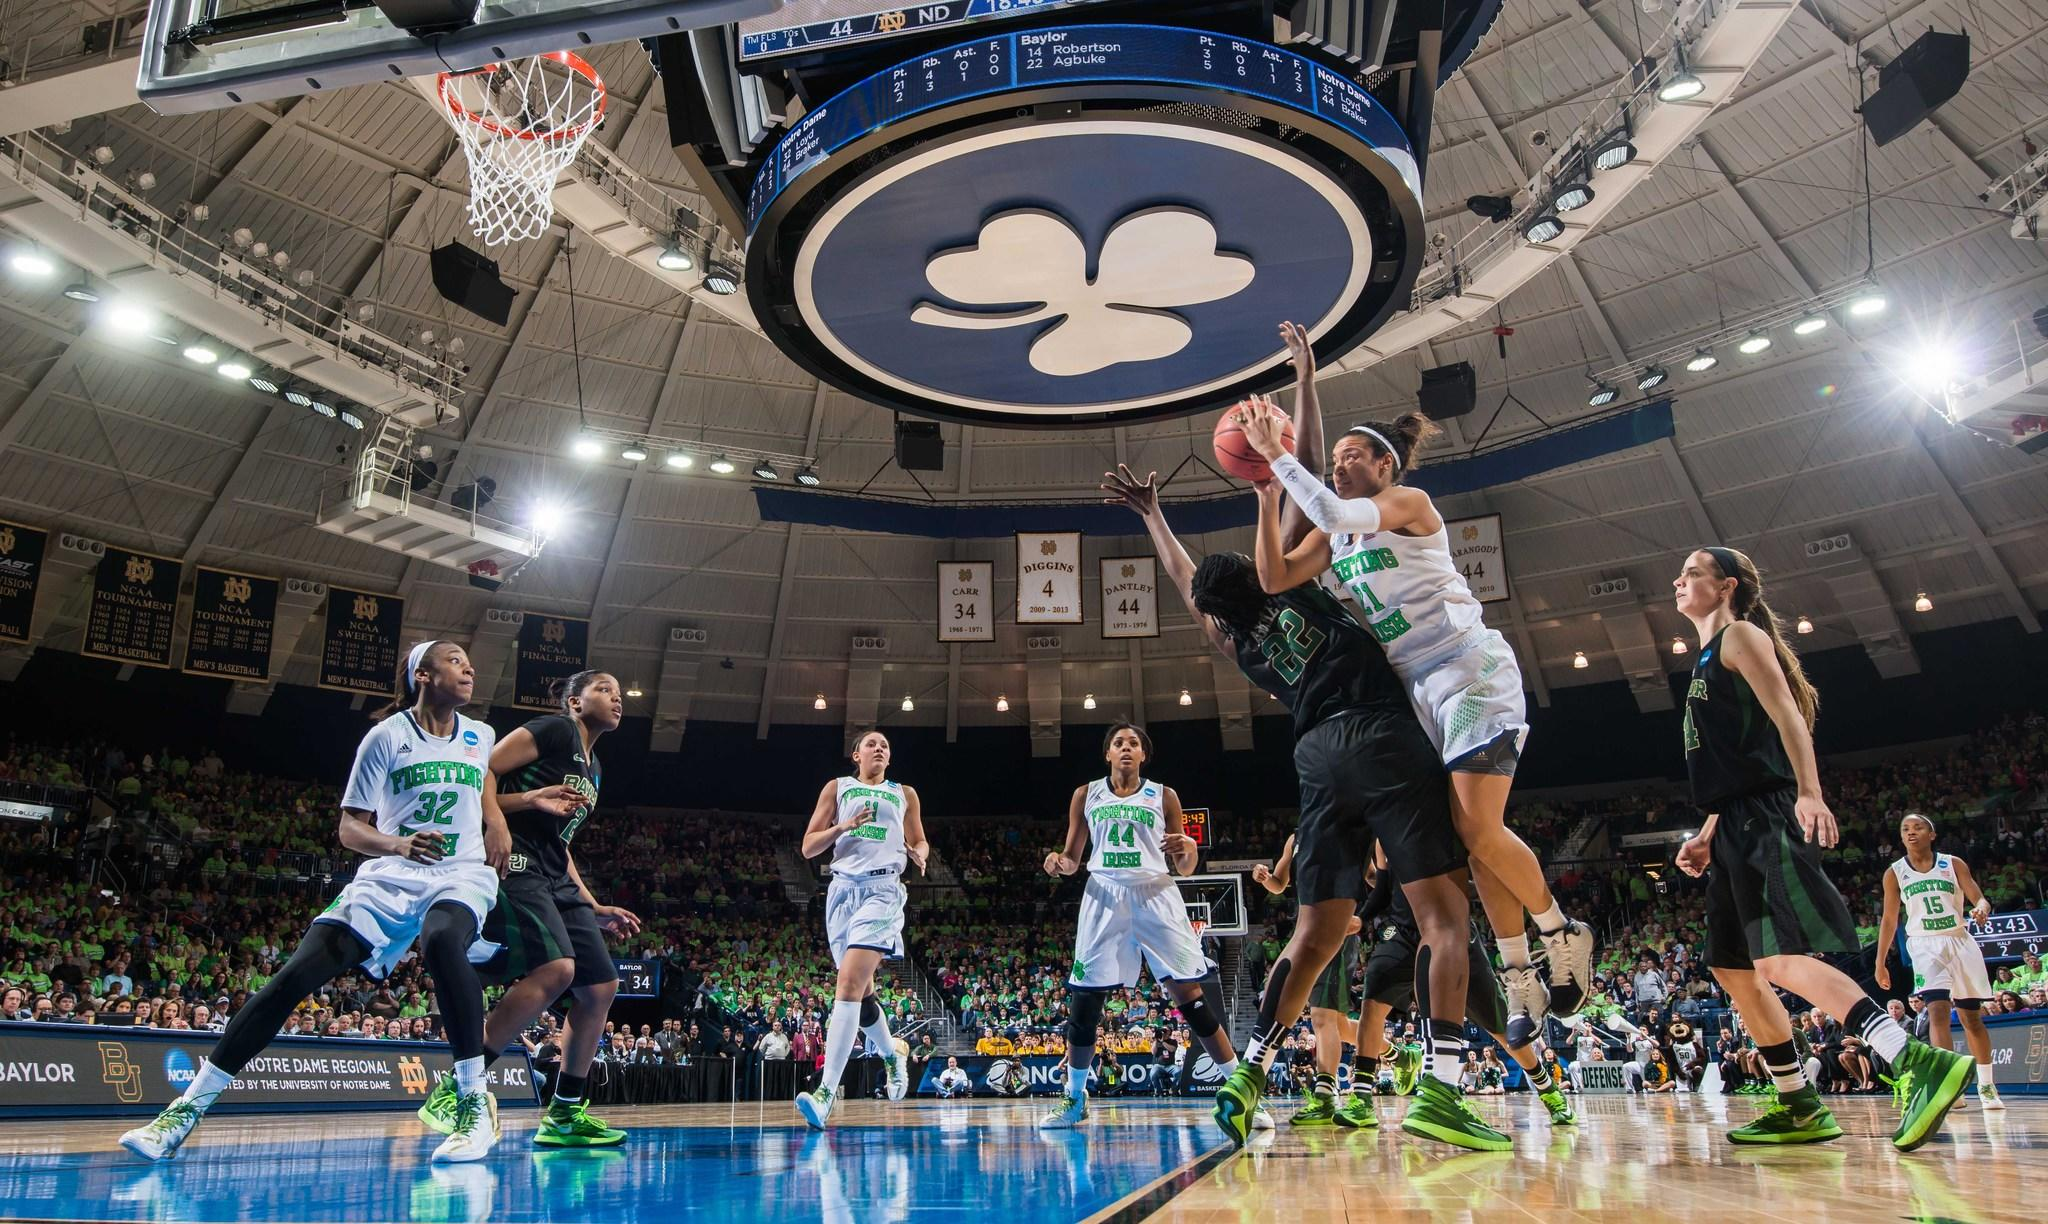 Notre Dame guard Kayla McBride goes up for a shot as Baylor center Sune Agbuke defends.